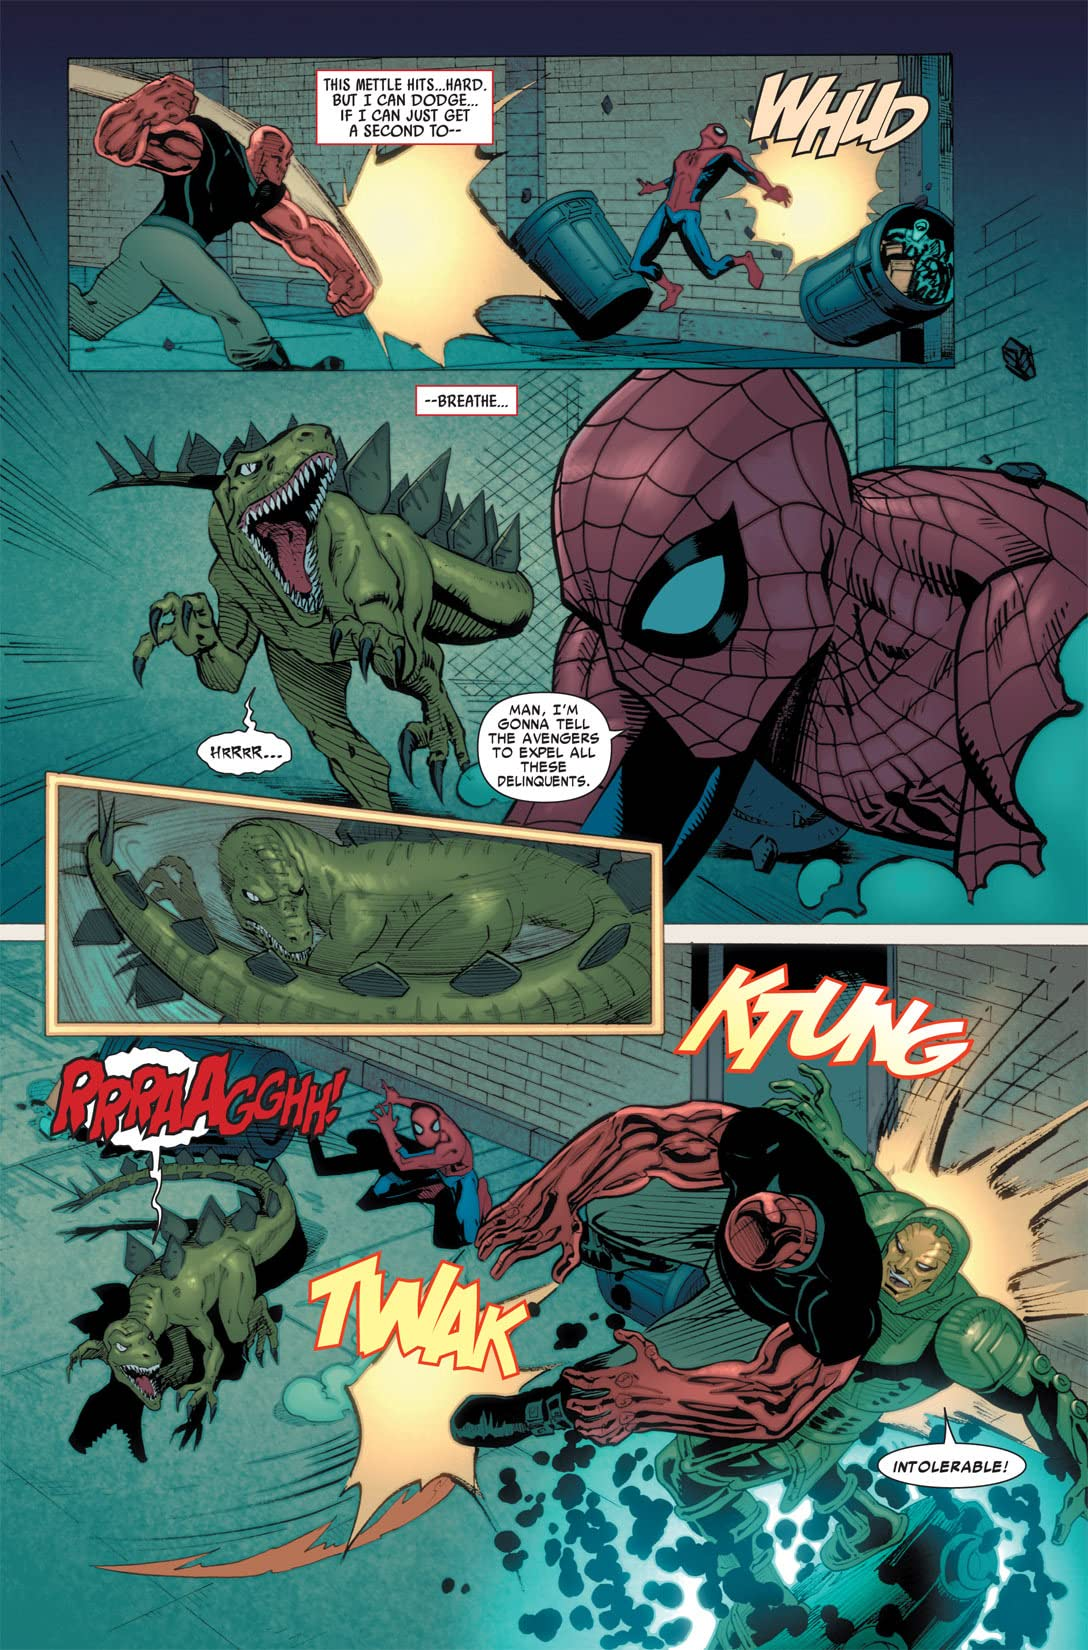 Amazing Spider-Man (1999-2013) #662